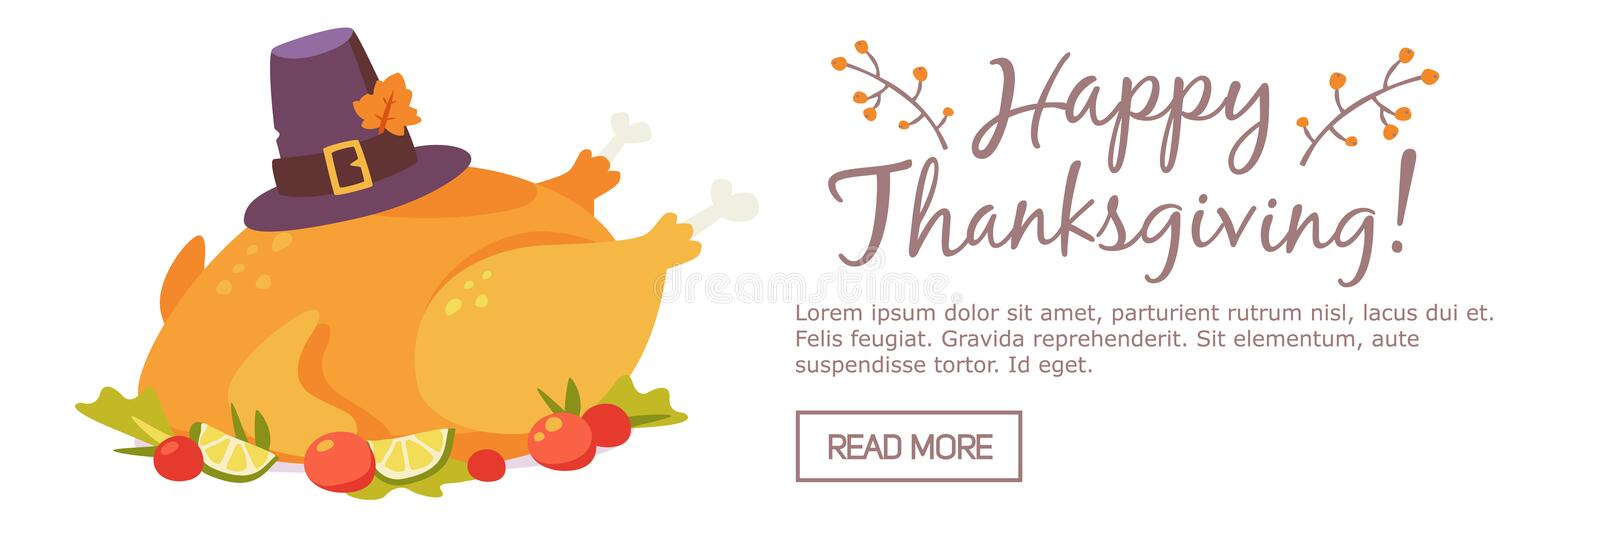 Happy thanksgiving day banner royalty free stock image